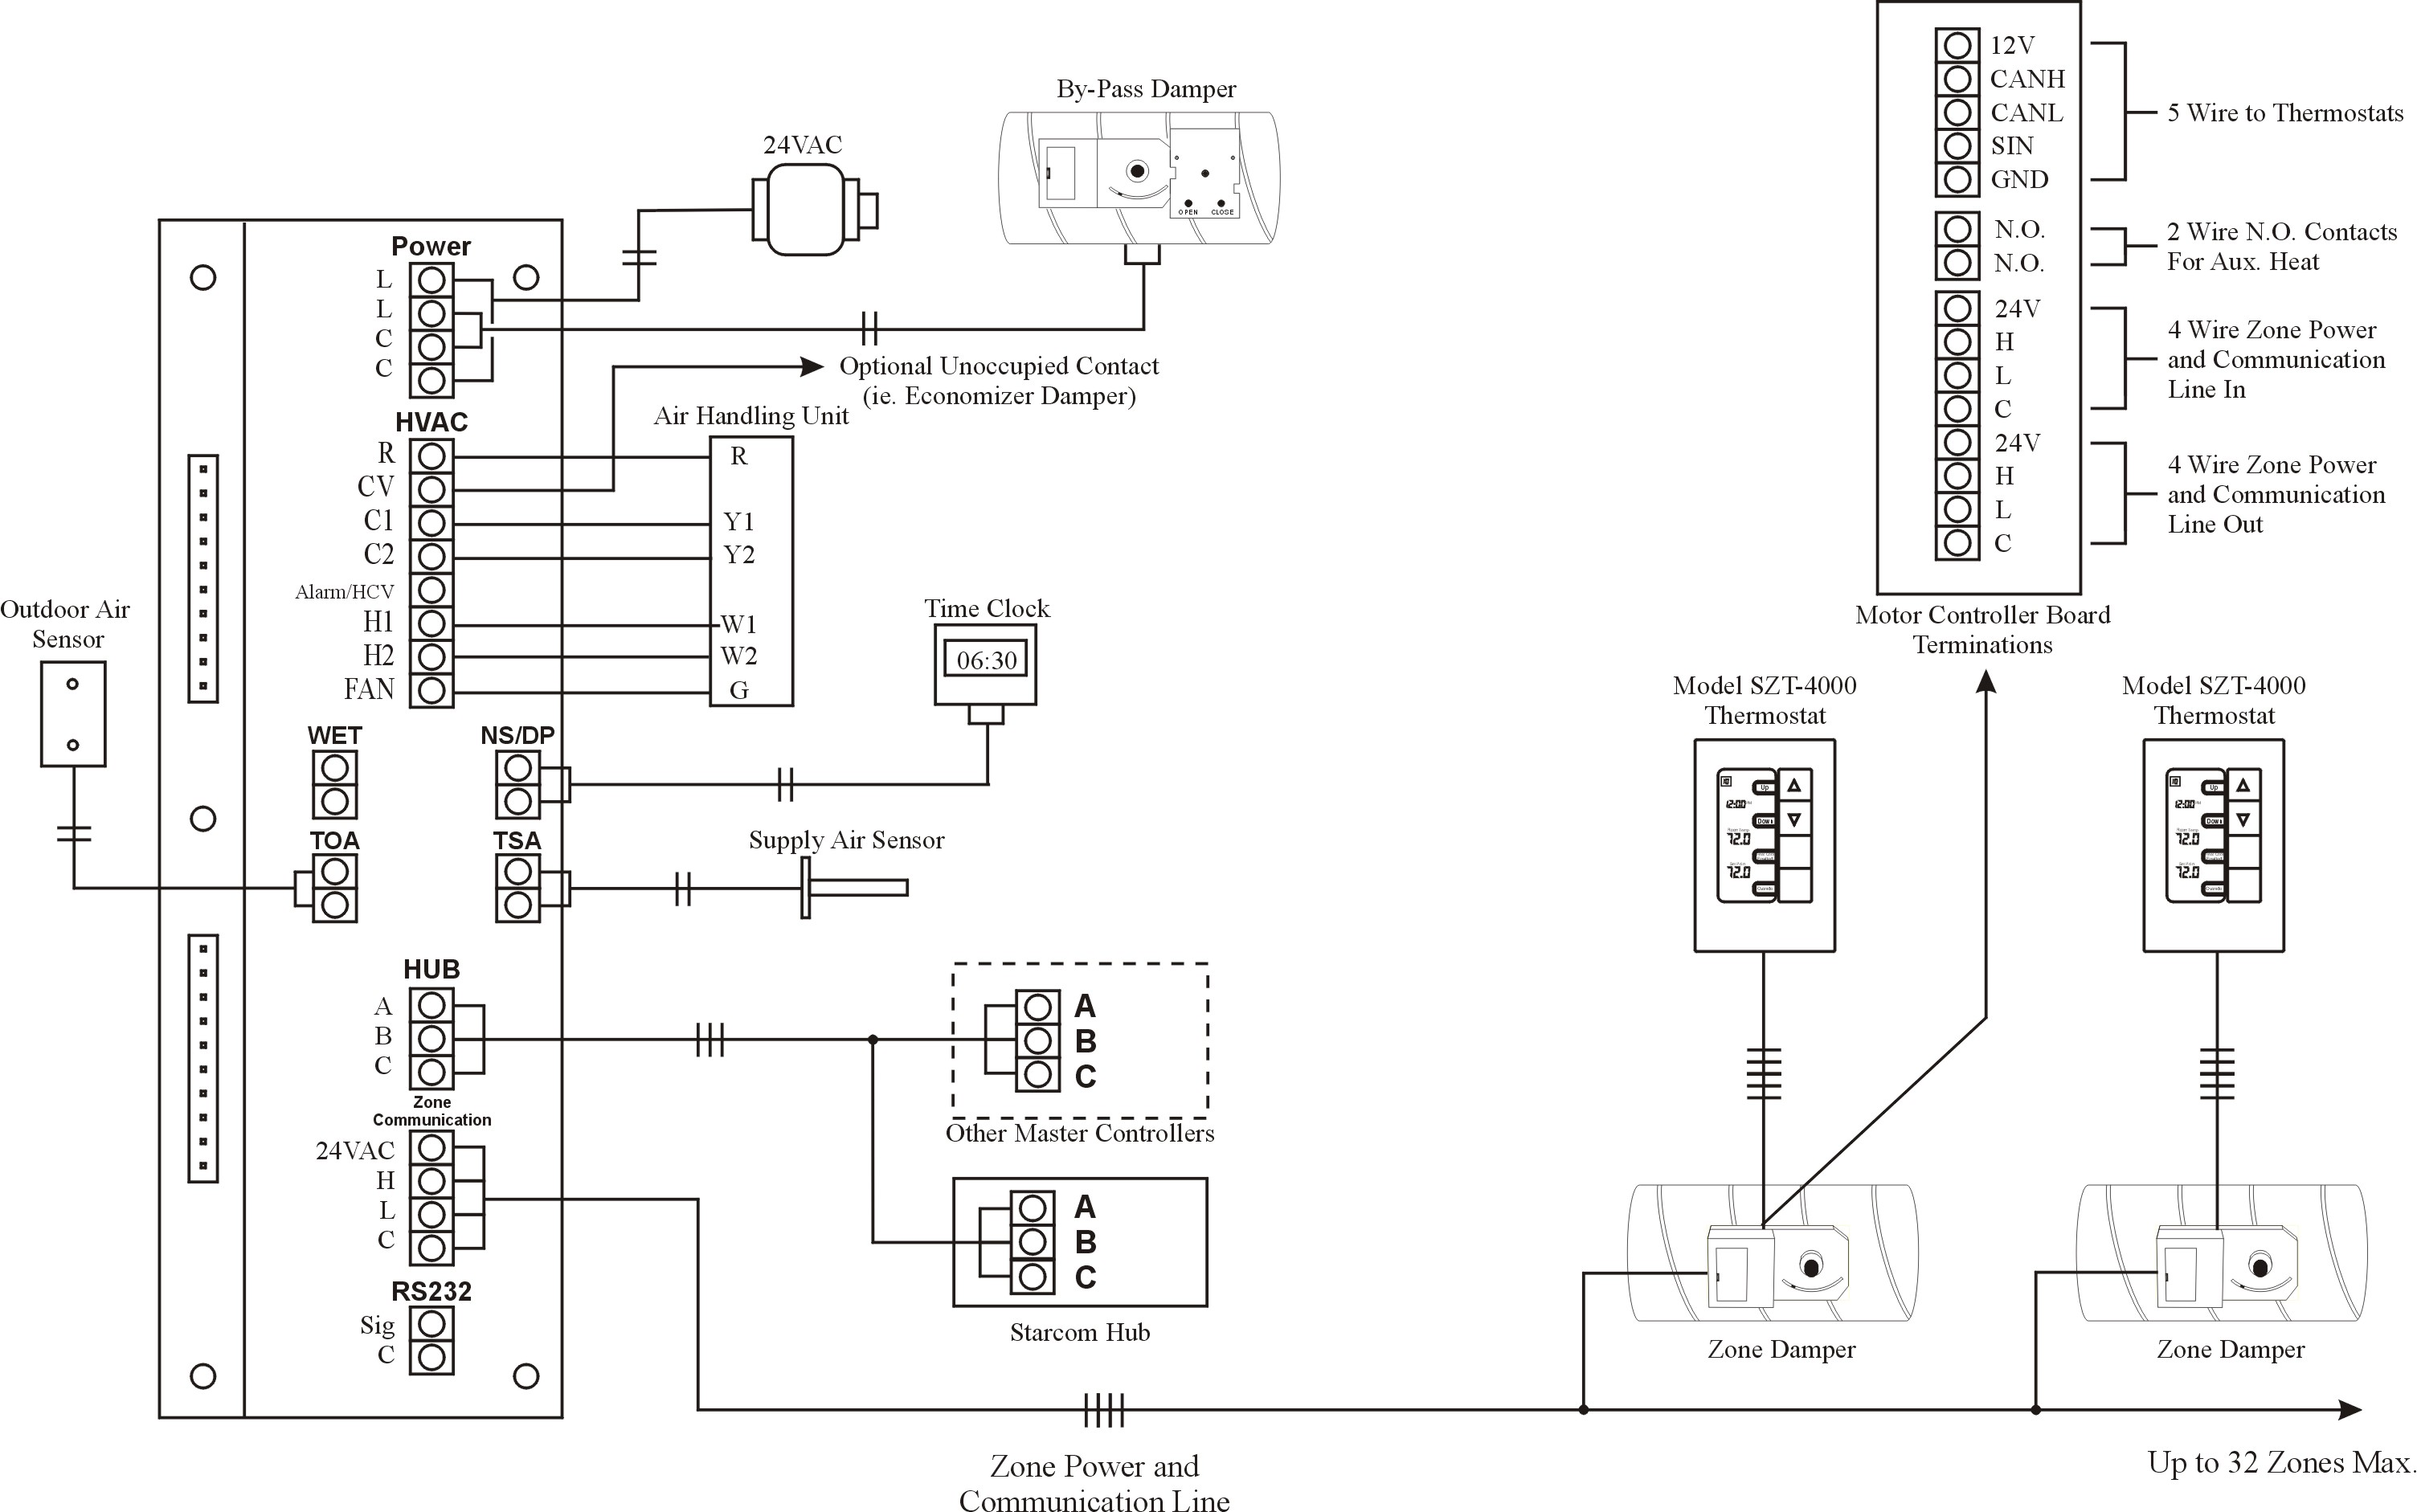 Starzone4000_wiring air alarm wiring diagram drive by wire wiring diagram \u2022 wiring system sensor dh1851ac wiring diagrams at panicattacktreatment.co